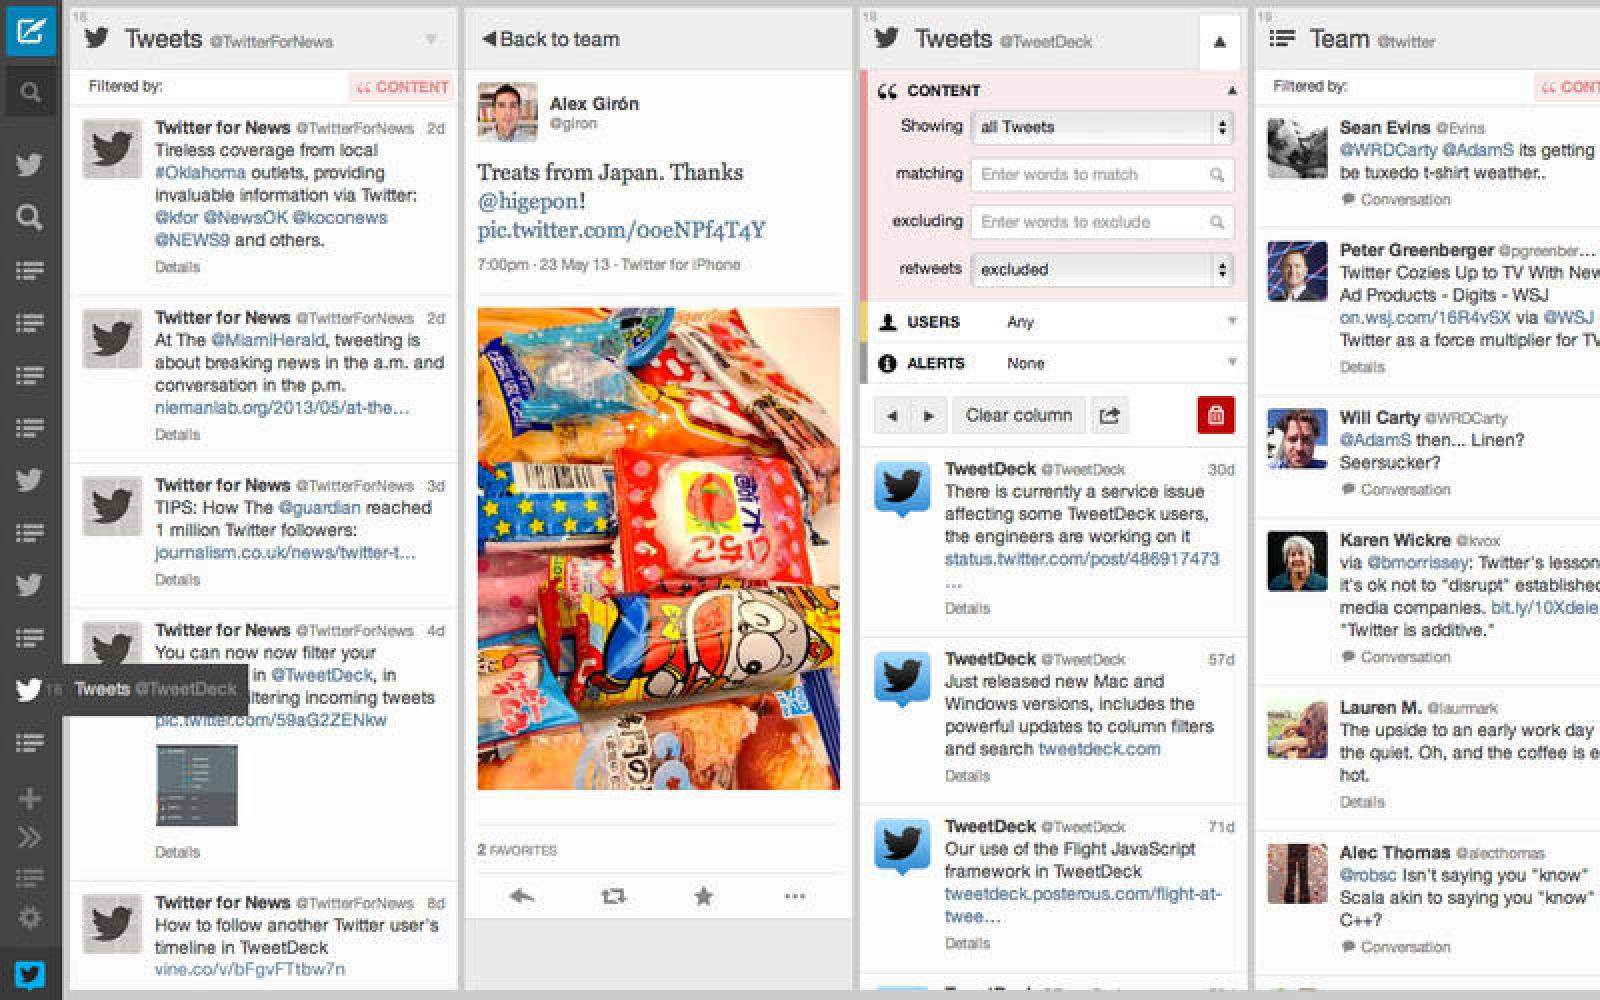 TweetDeck for Mac updated with username autocomplete, a new tweet composer, and more